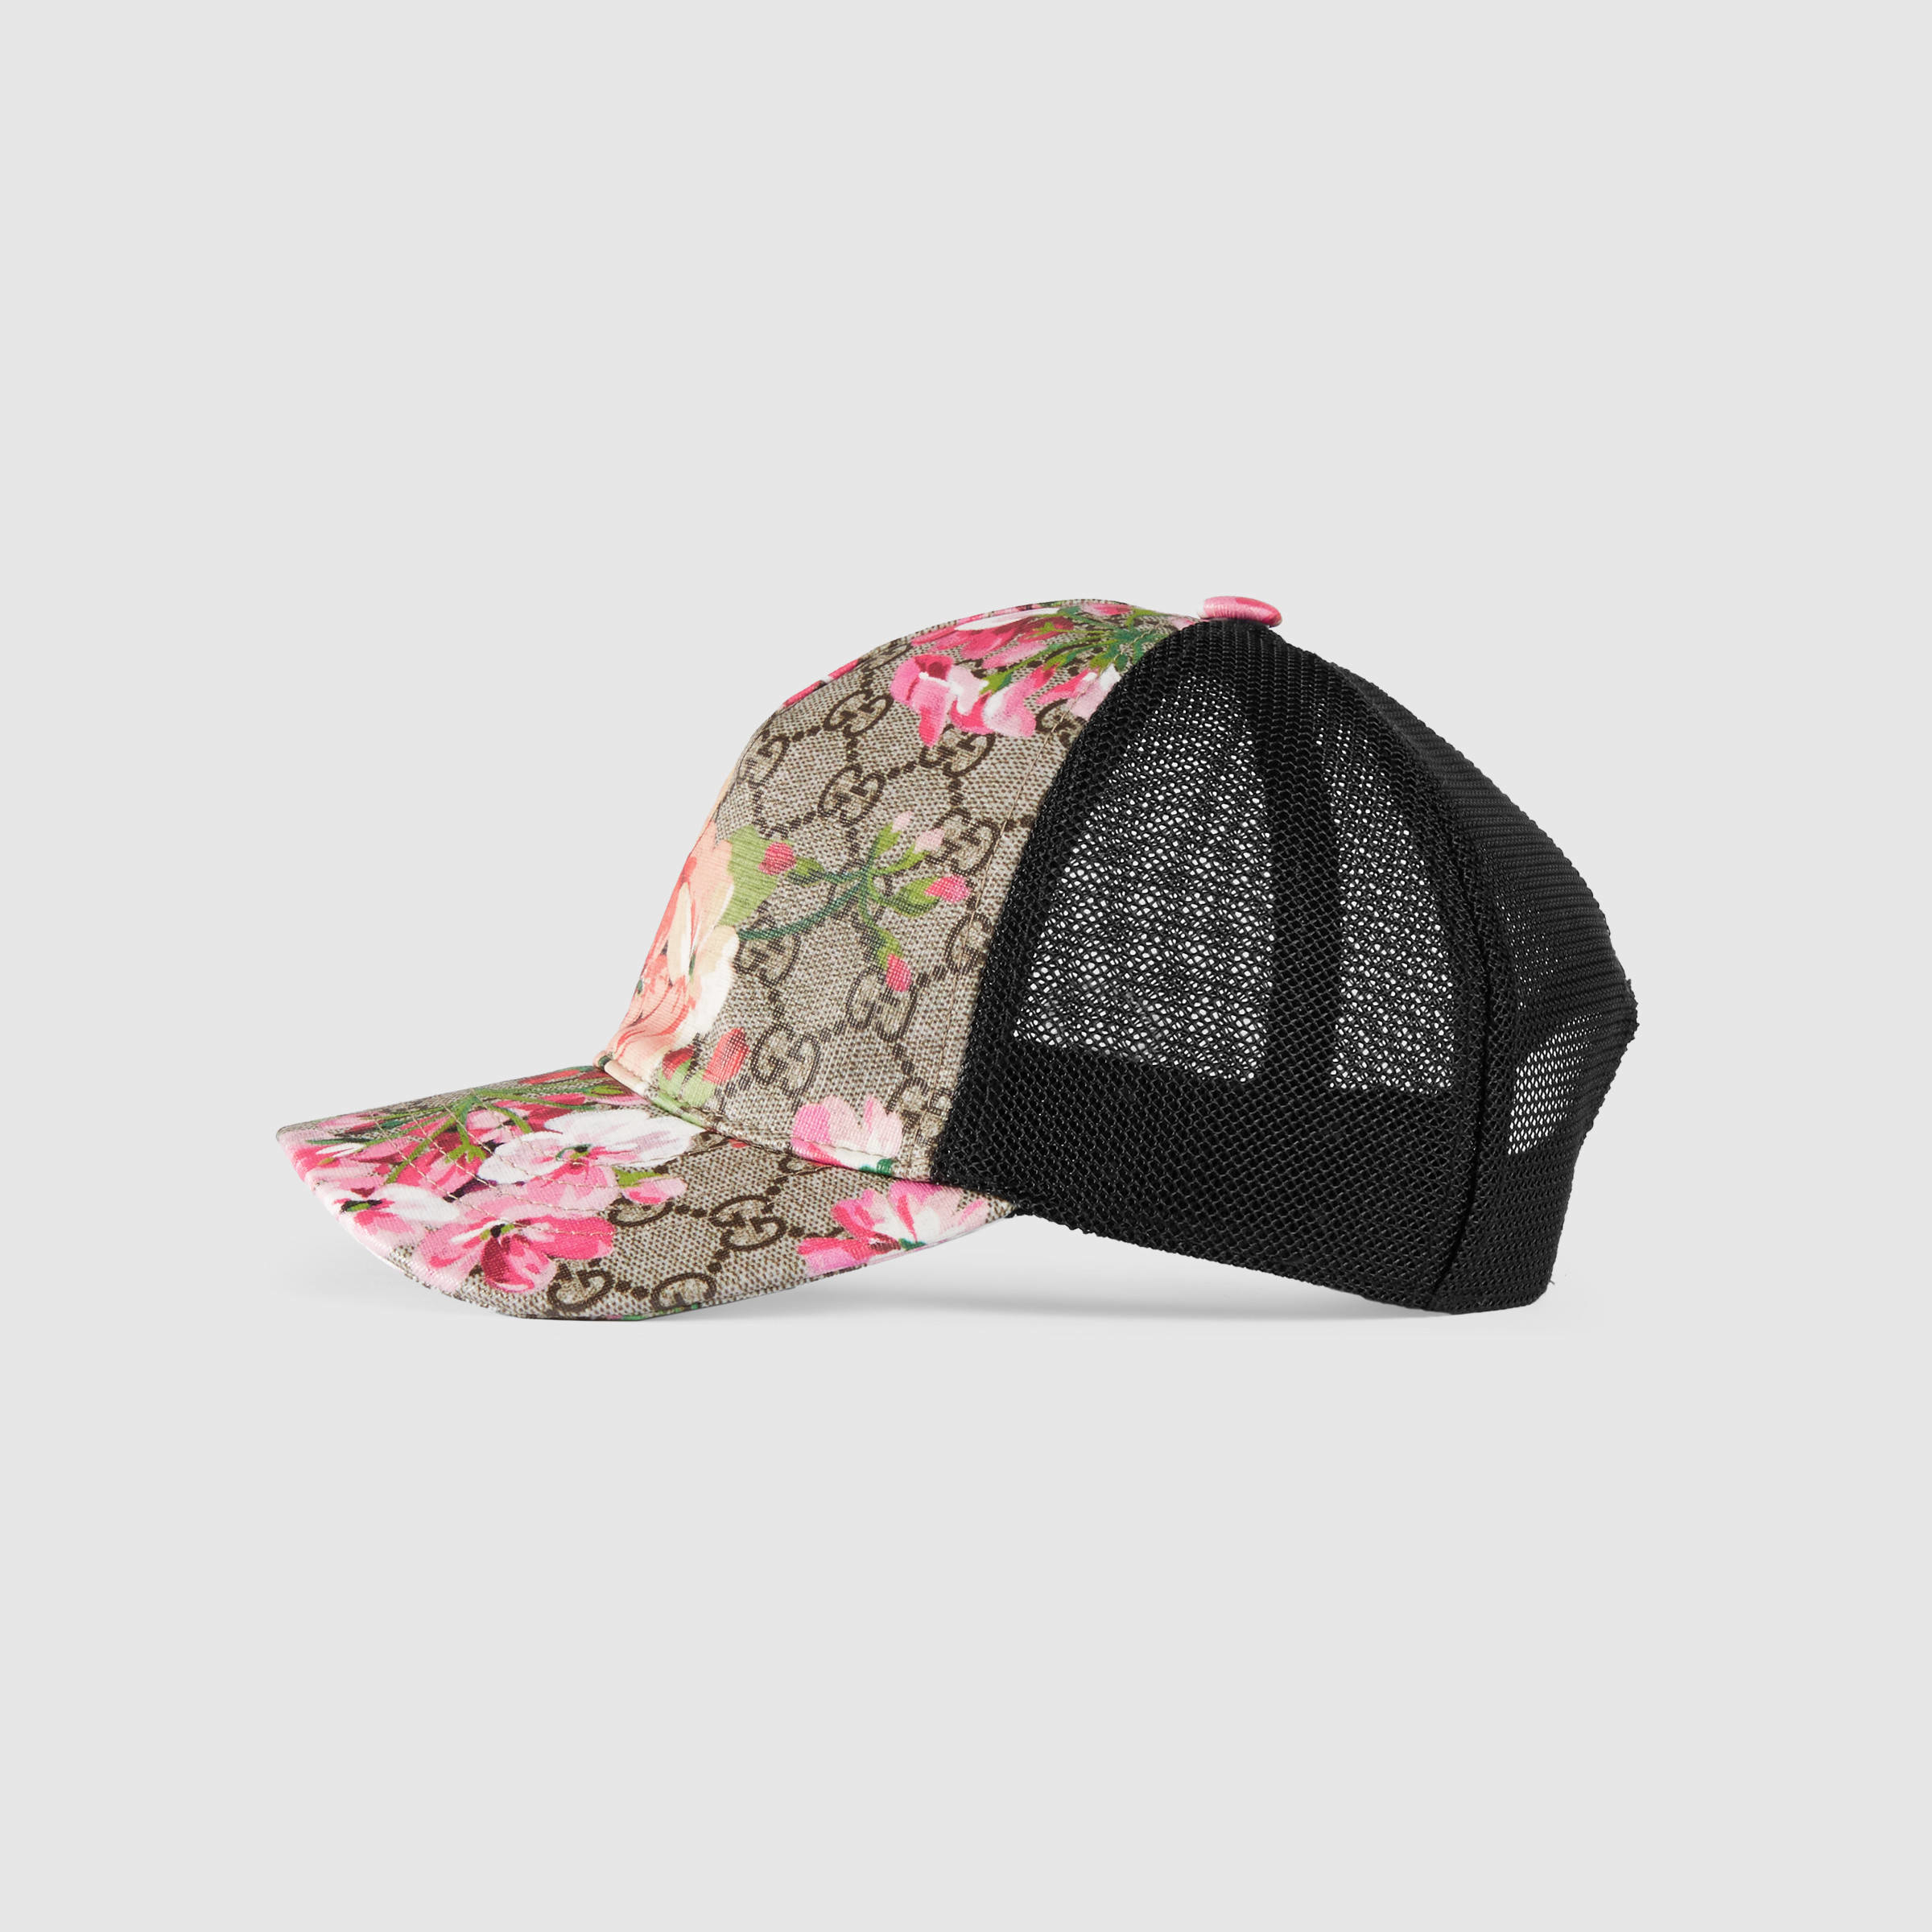 Gucci Gg Blooms Baseball Hat in Multicolour